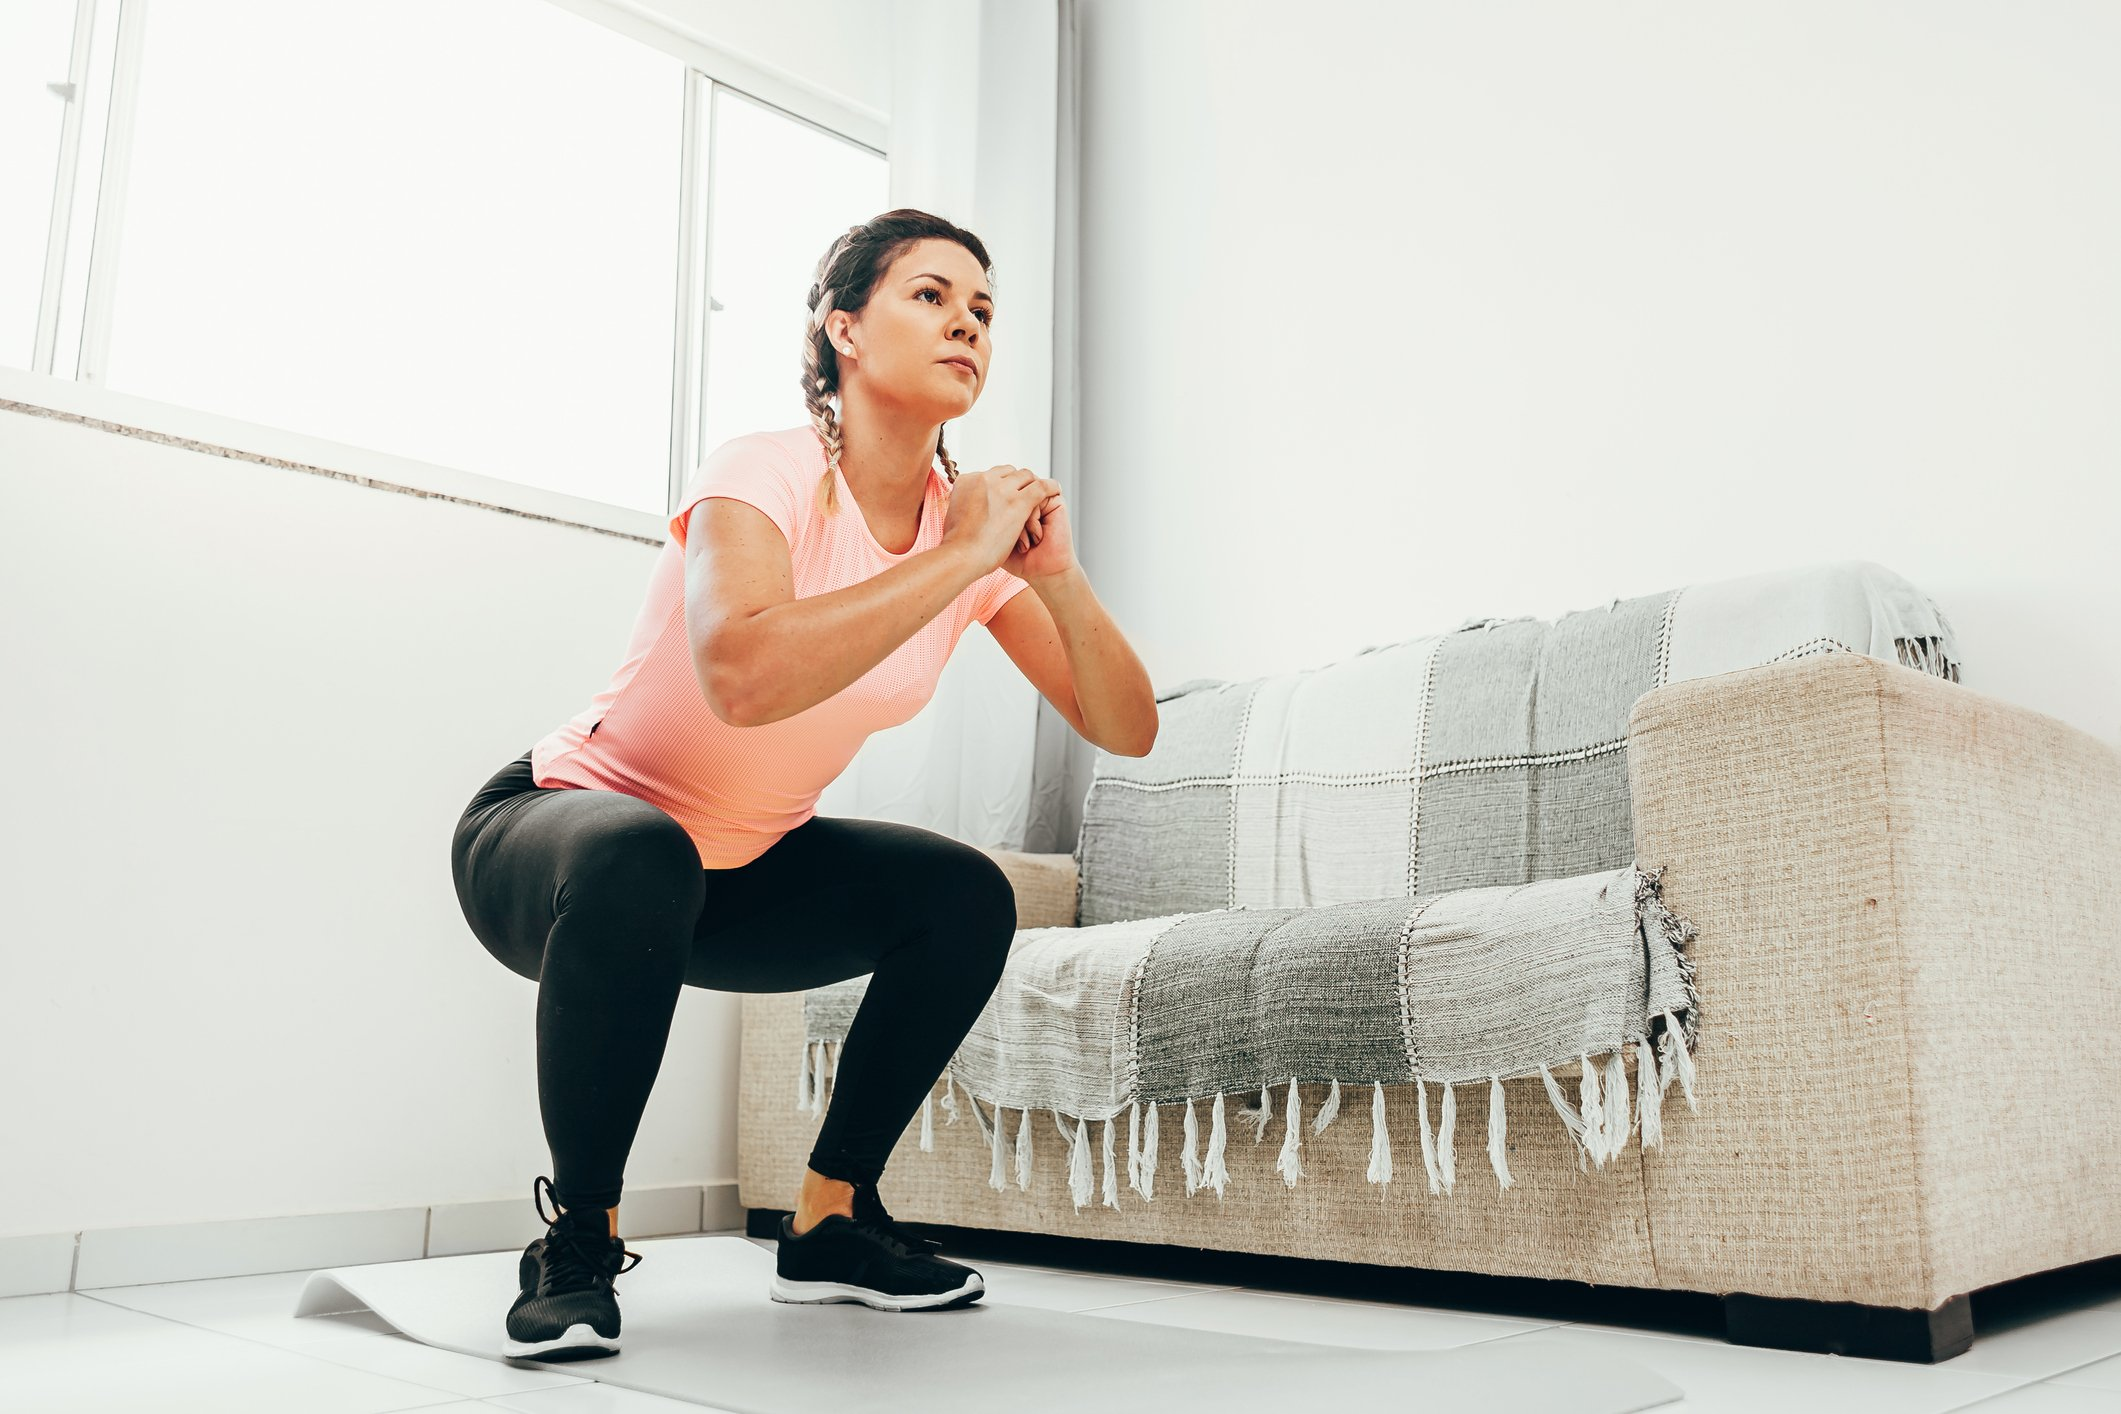 Getting Bored with Squats?